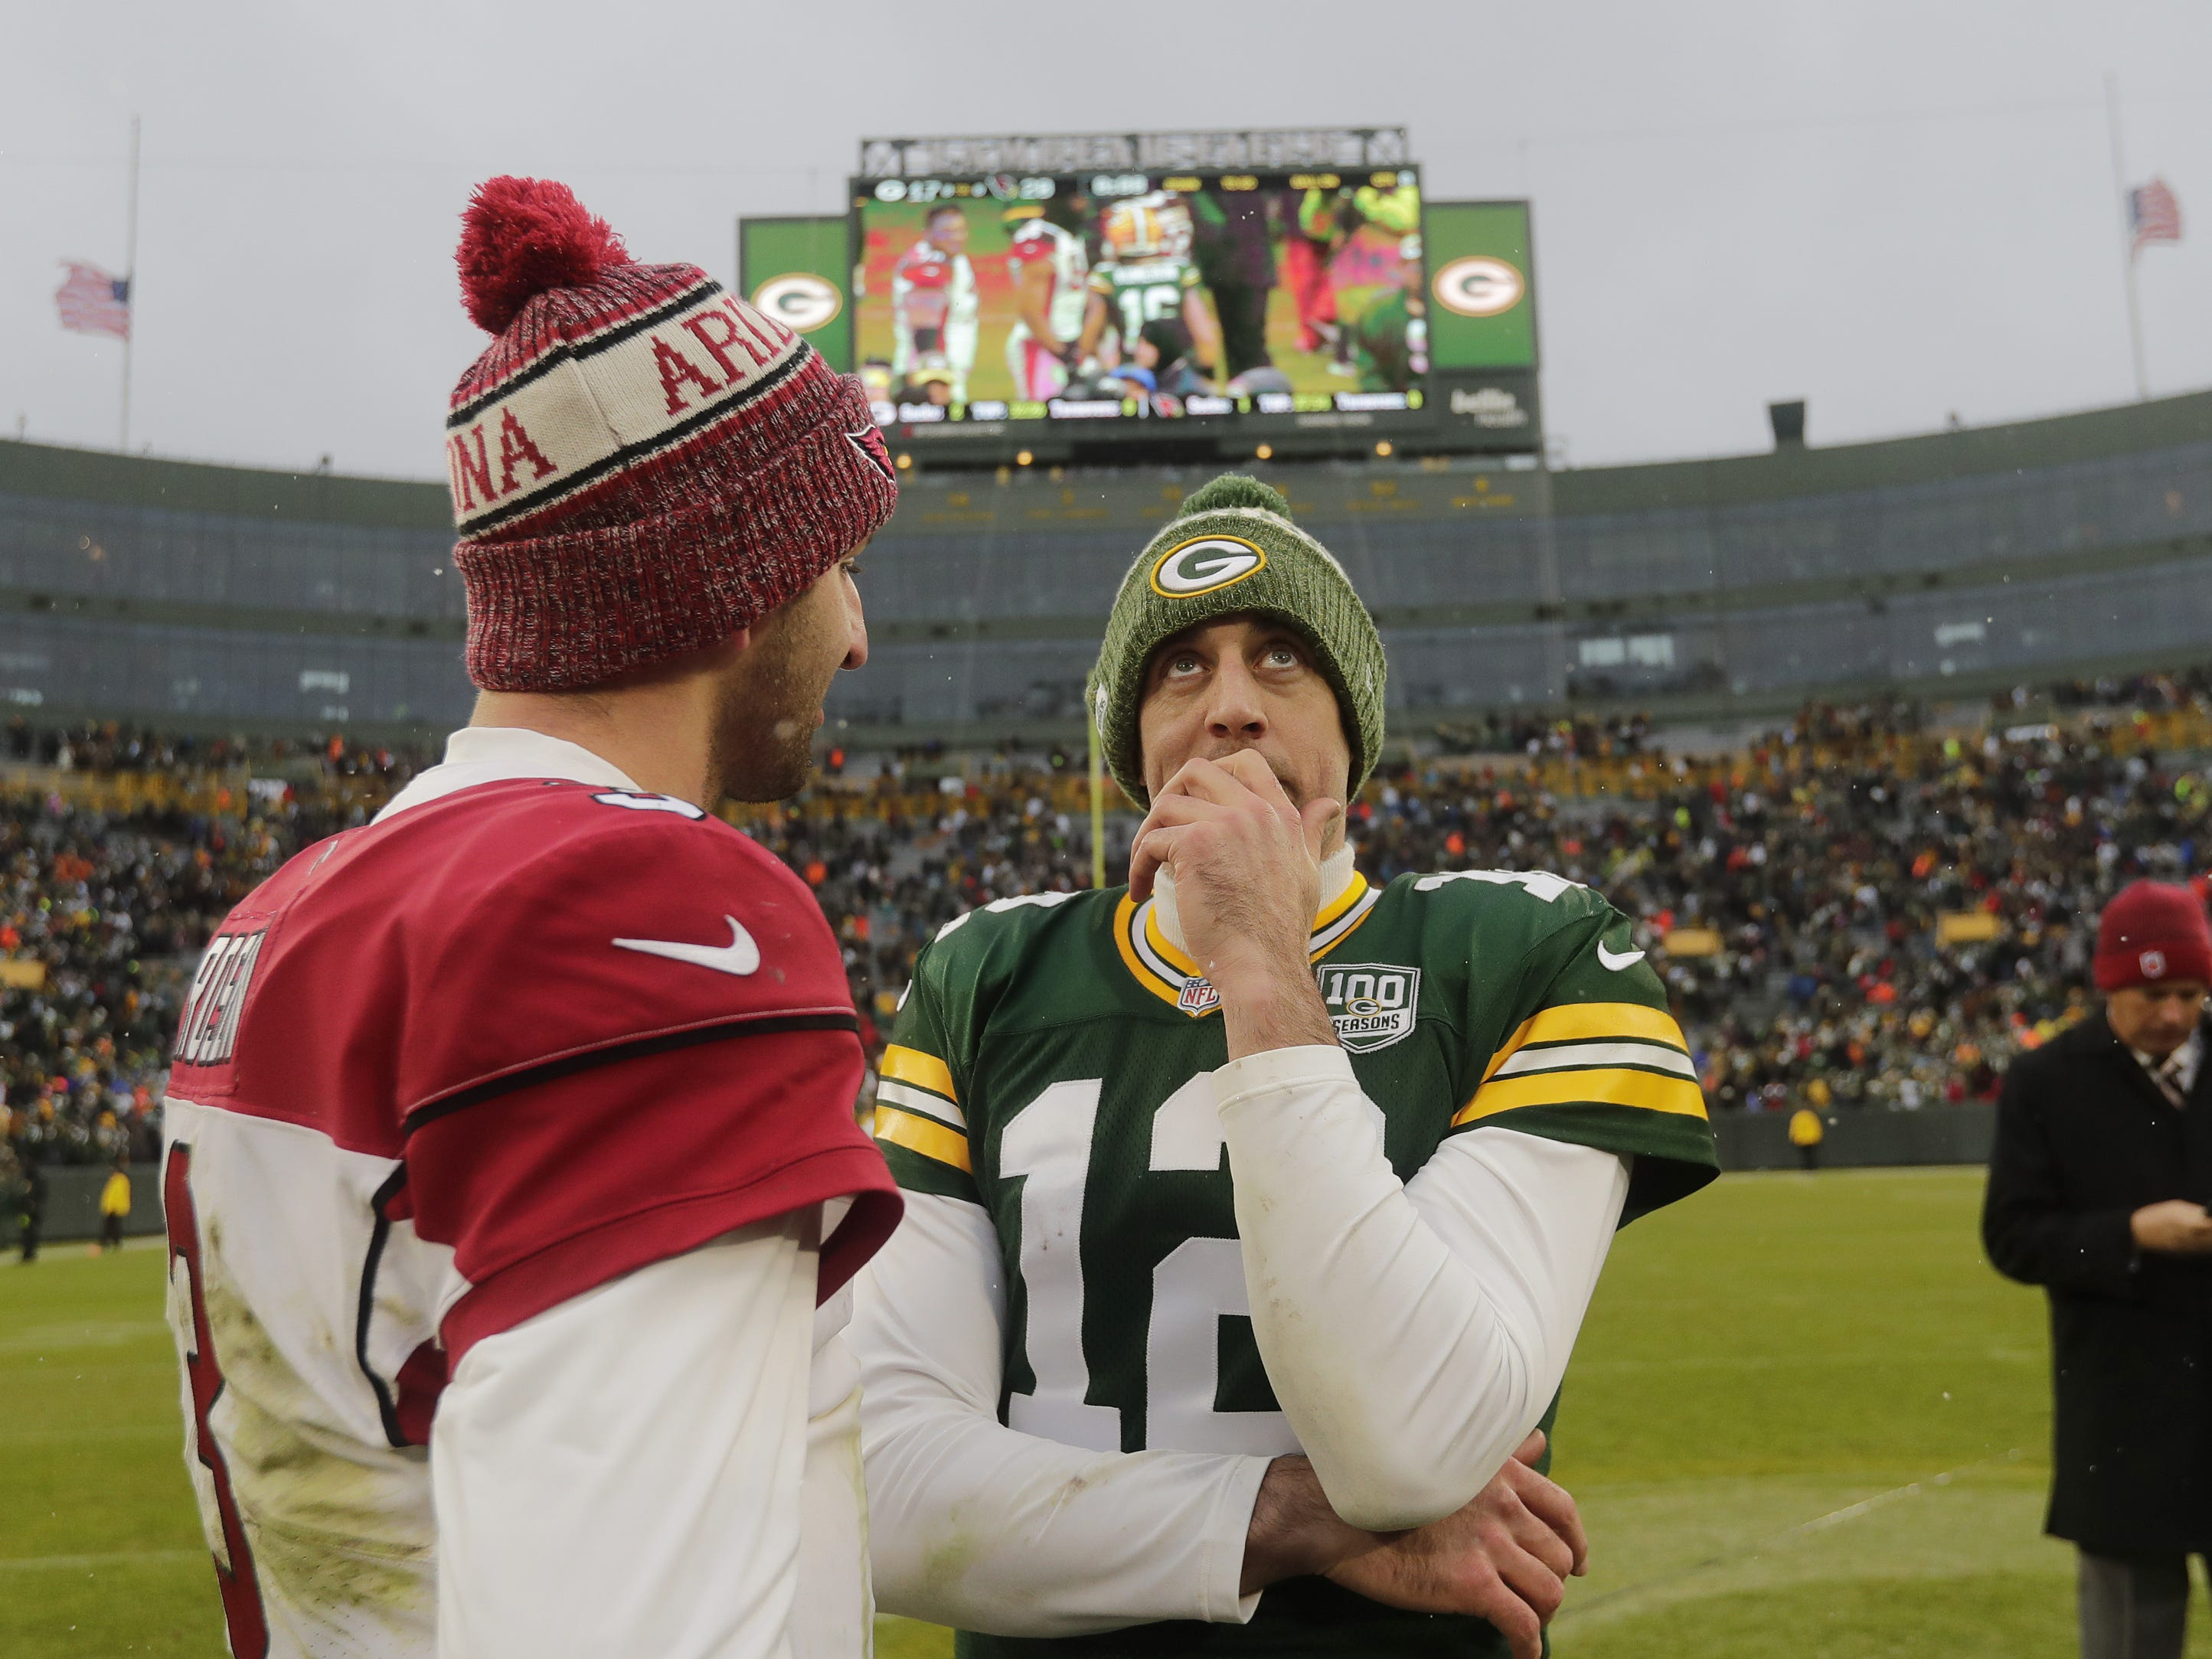 Green Bay Packers quarterback Aaron Rodgers (12) talks with Arizona Cardinals quarterback Josh Rosen (3) after the Cardinals defeated the Packers at Lambeau Field on Sunday, December 2, 2018 in Green Bay, Wis.